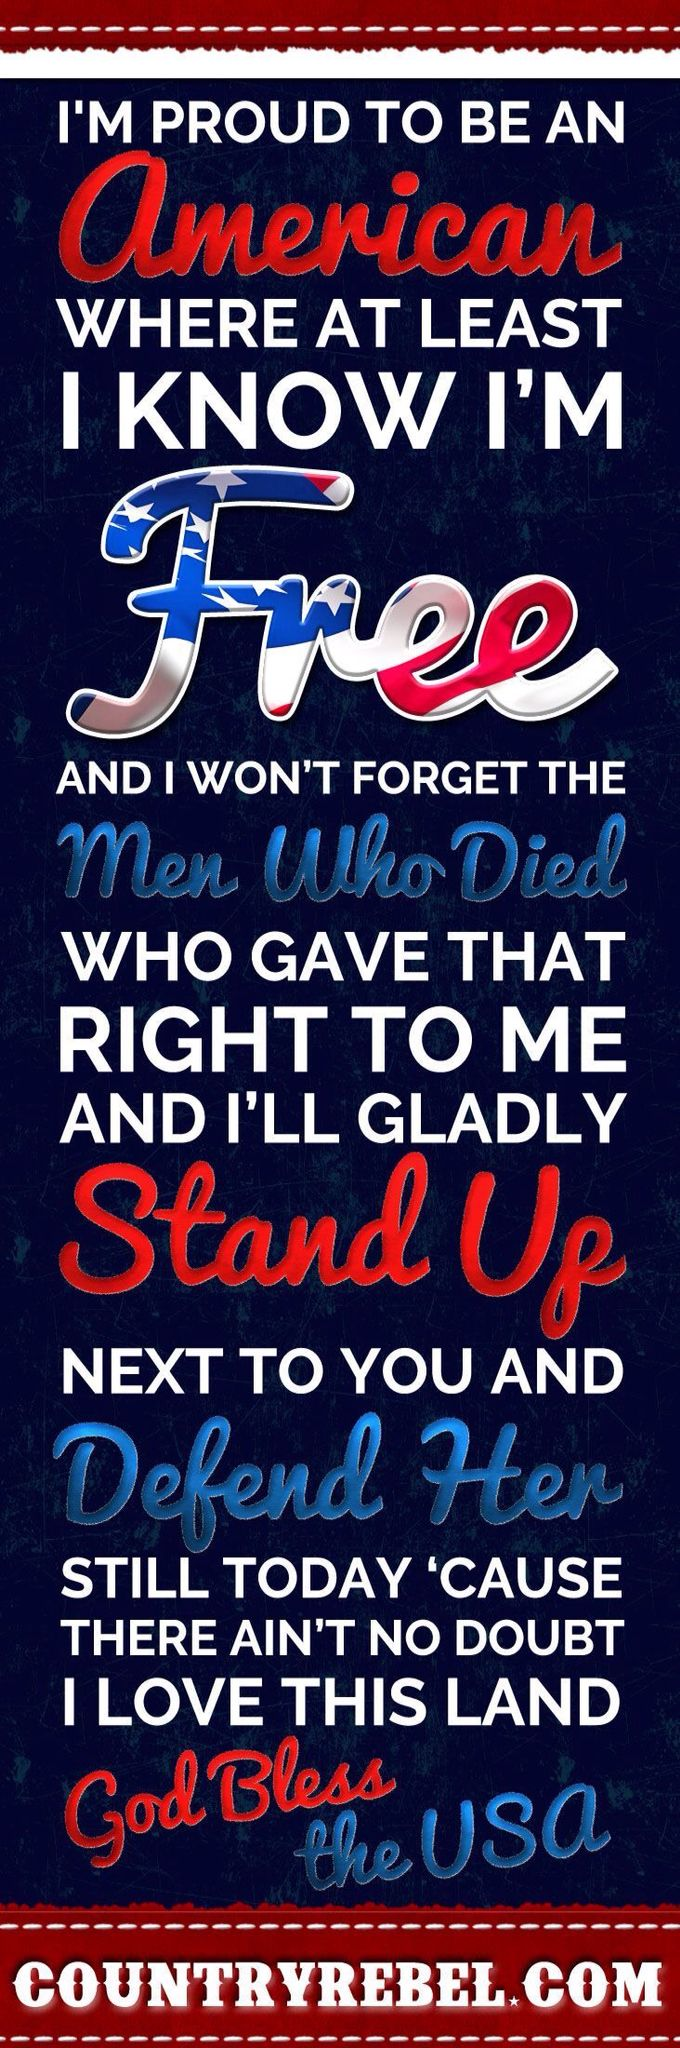 Lee Greenwood - She's Lying / Home Away From Home